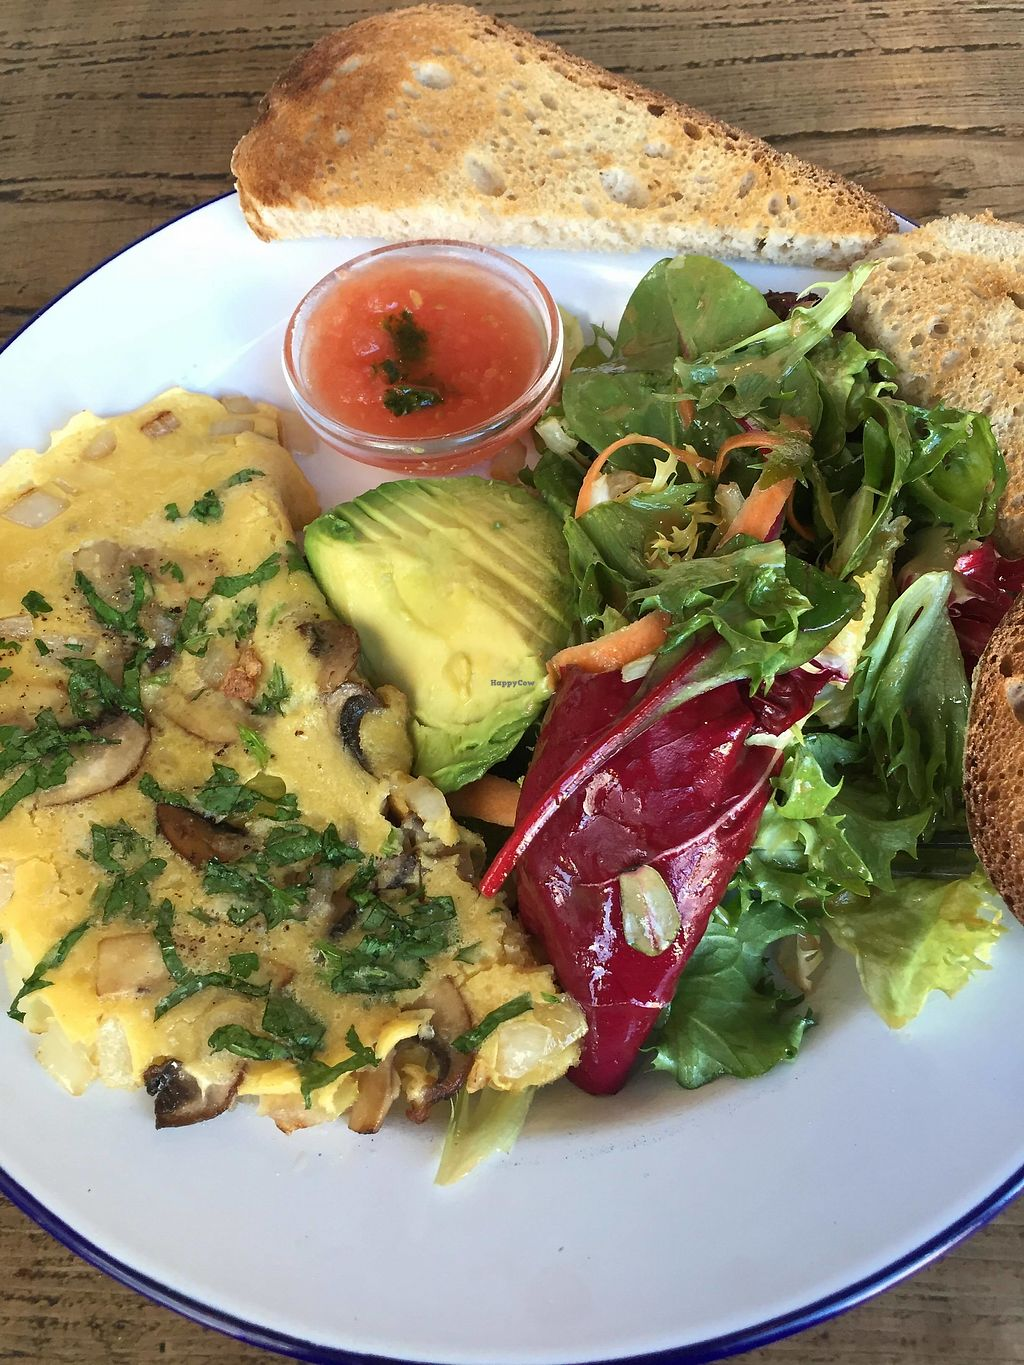 """Photo of EZ and Moss  by <a href=""""/members/profile/Yasminesan"""">Yasminesan</a> <br/>Vegan mushroom omelette <br/> January 29, 2018  - <a href='/contact/abuse/image/46491/352521'>Report</a>"""